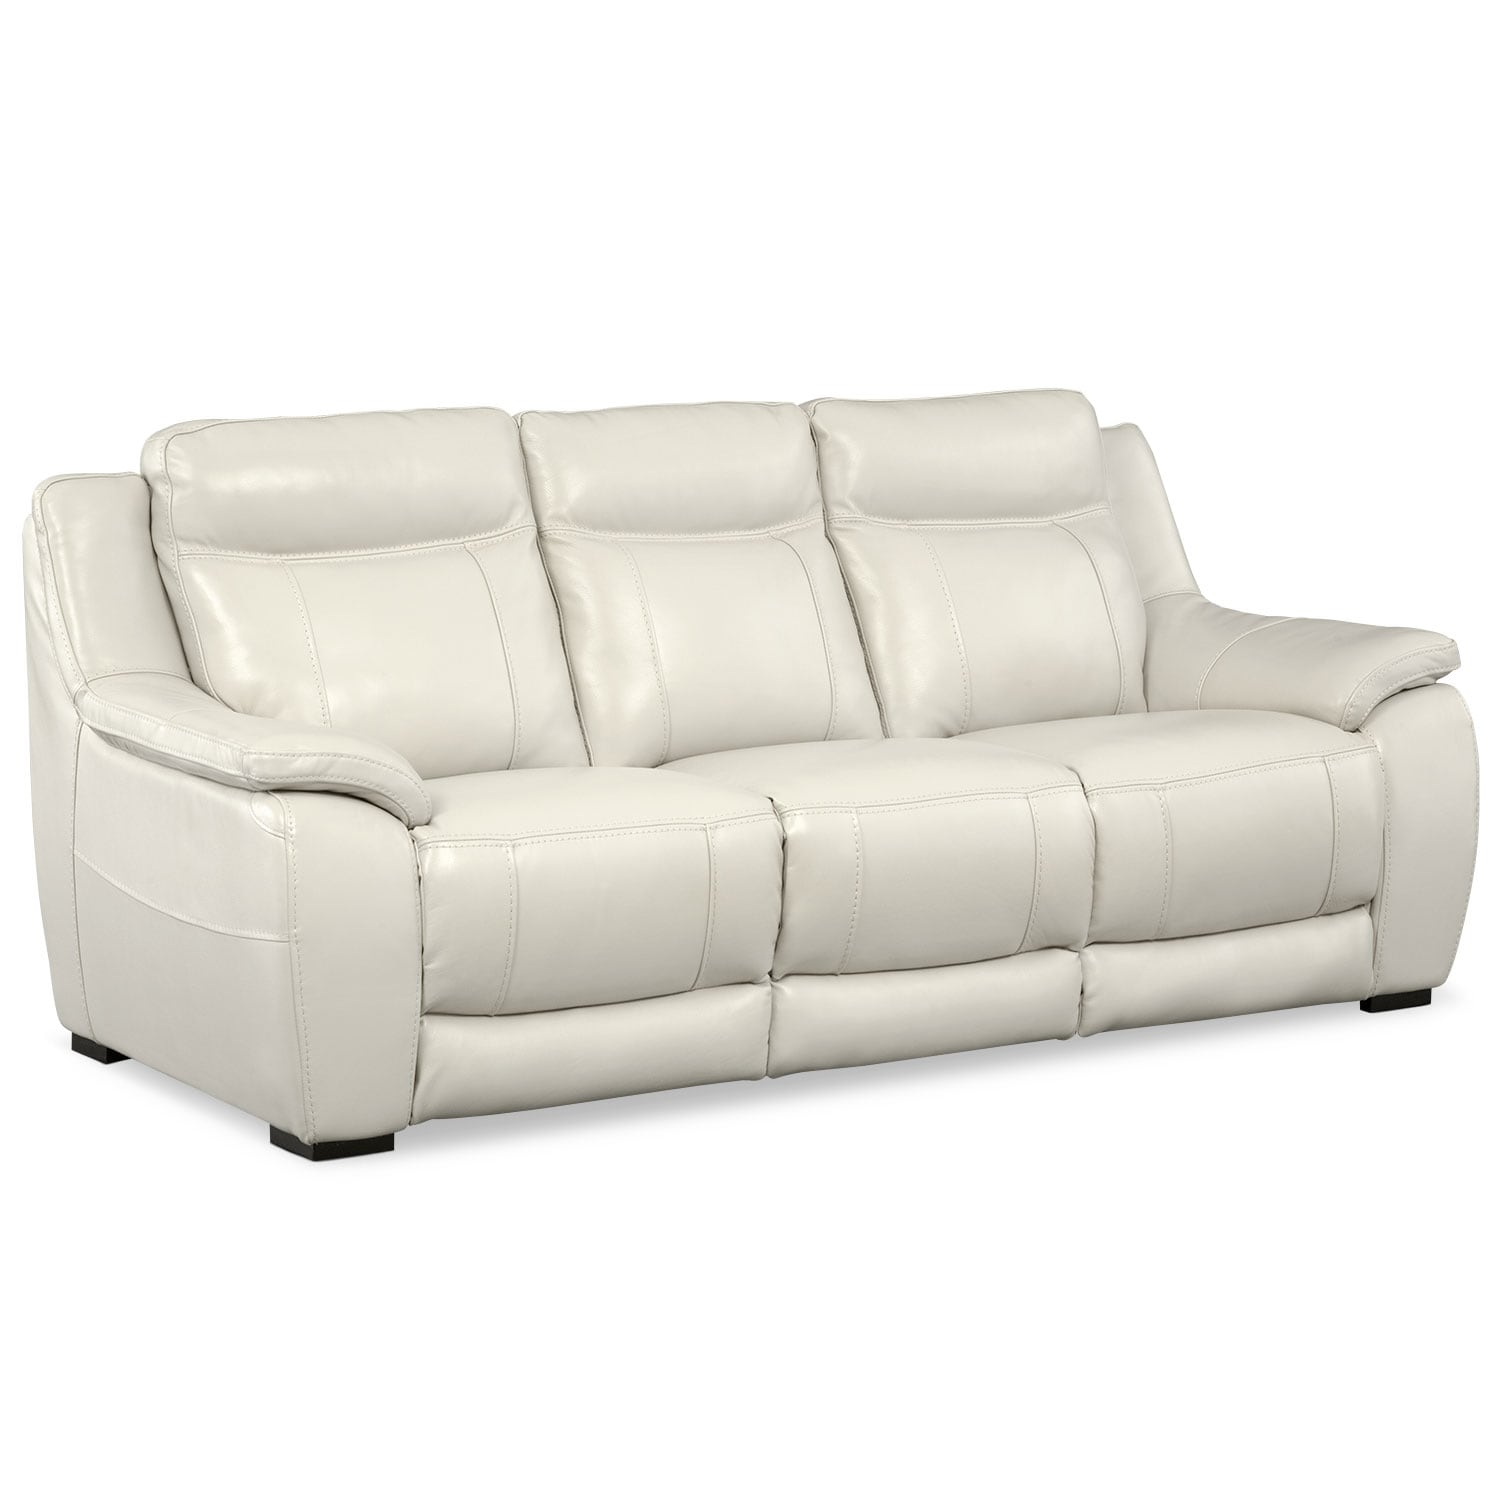 Ivory Living Room Furniture: Value City Furniture